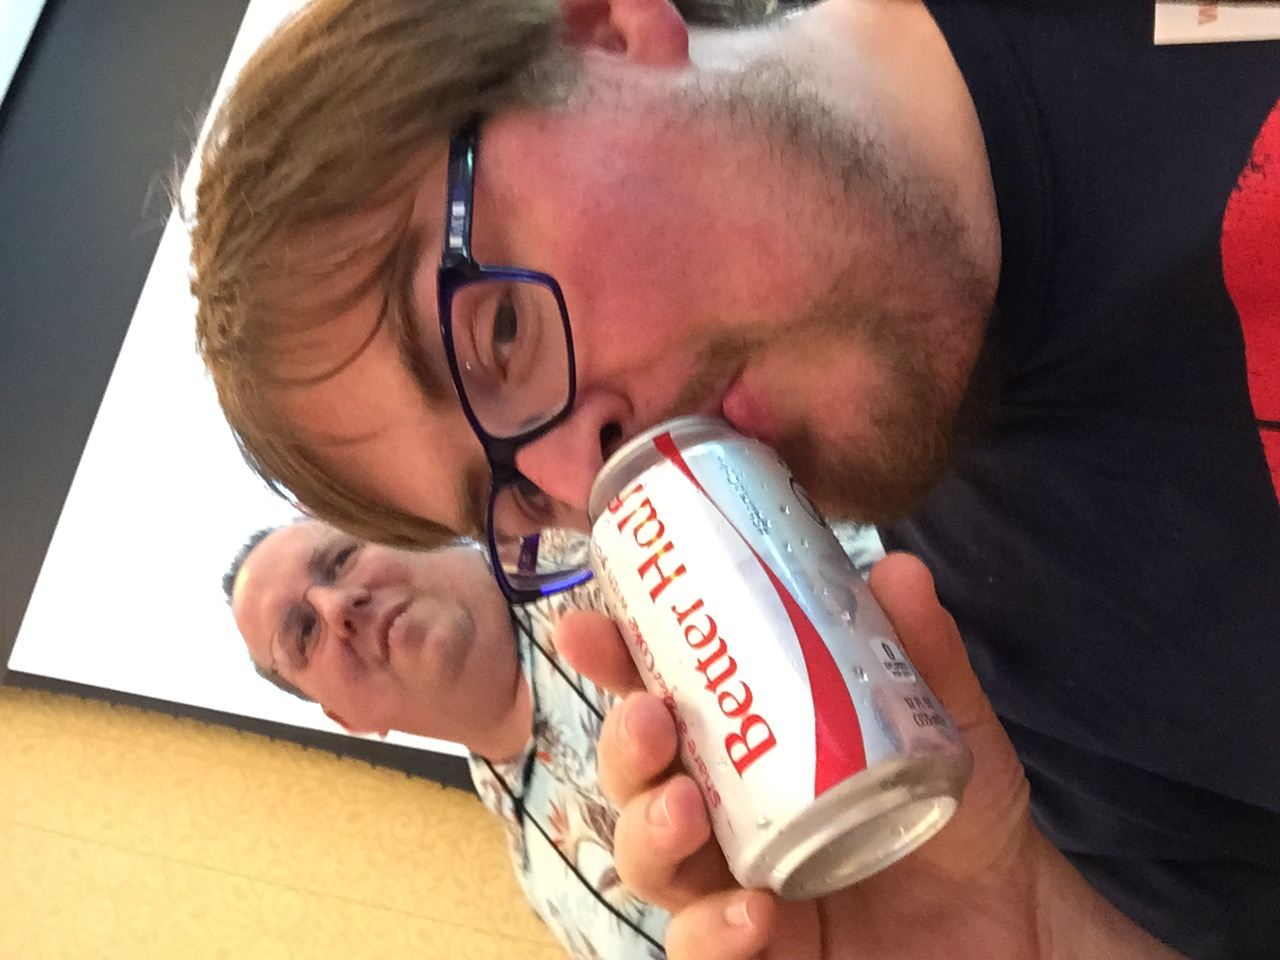 Just a little soda to get through the meetings.